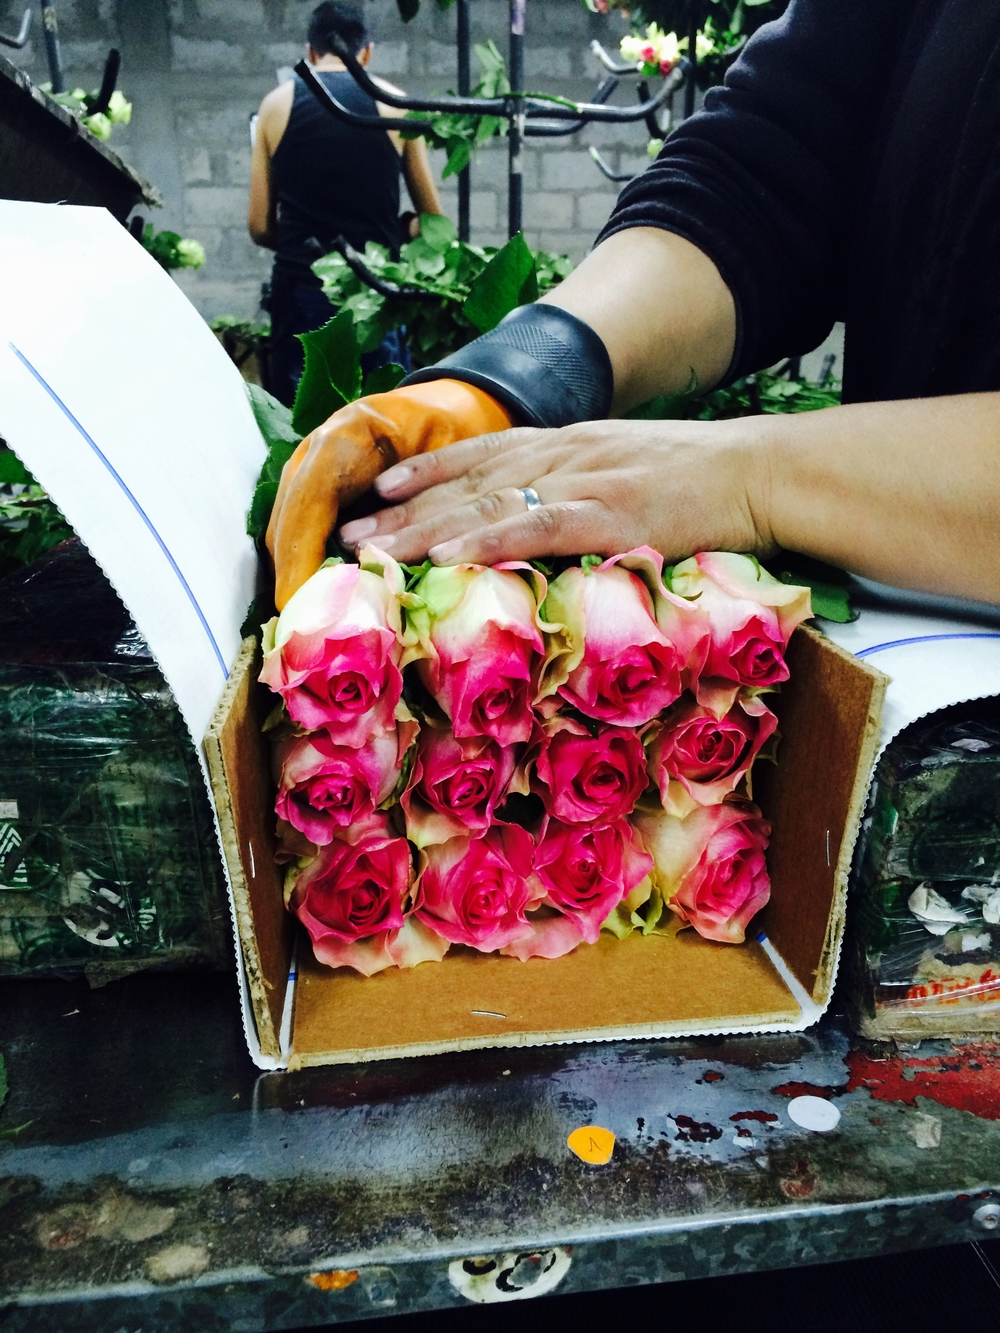 Hand Grading of Roses is not unusual at any farm in the world. The arrival condition ofthe rosesinto the hands of the consumer is where farms may distinguish themselves.